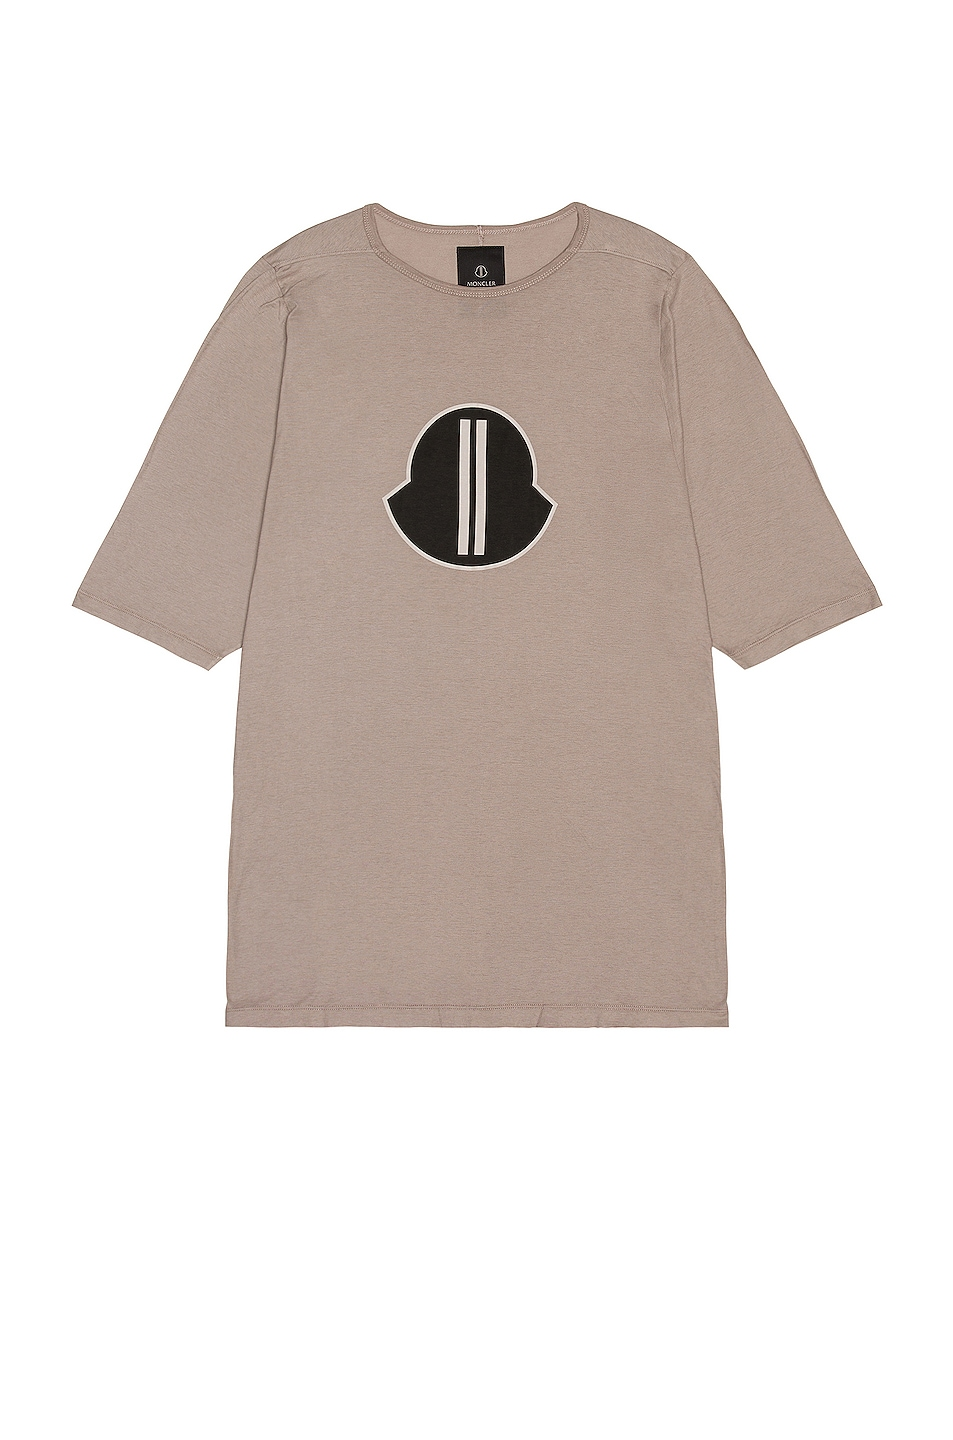 Image 1 of Moncler + Rick Owens Short Sleeve Graphic Tee in Dust